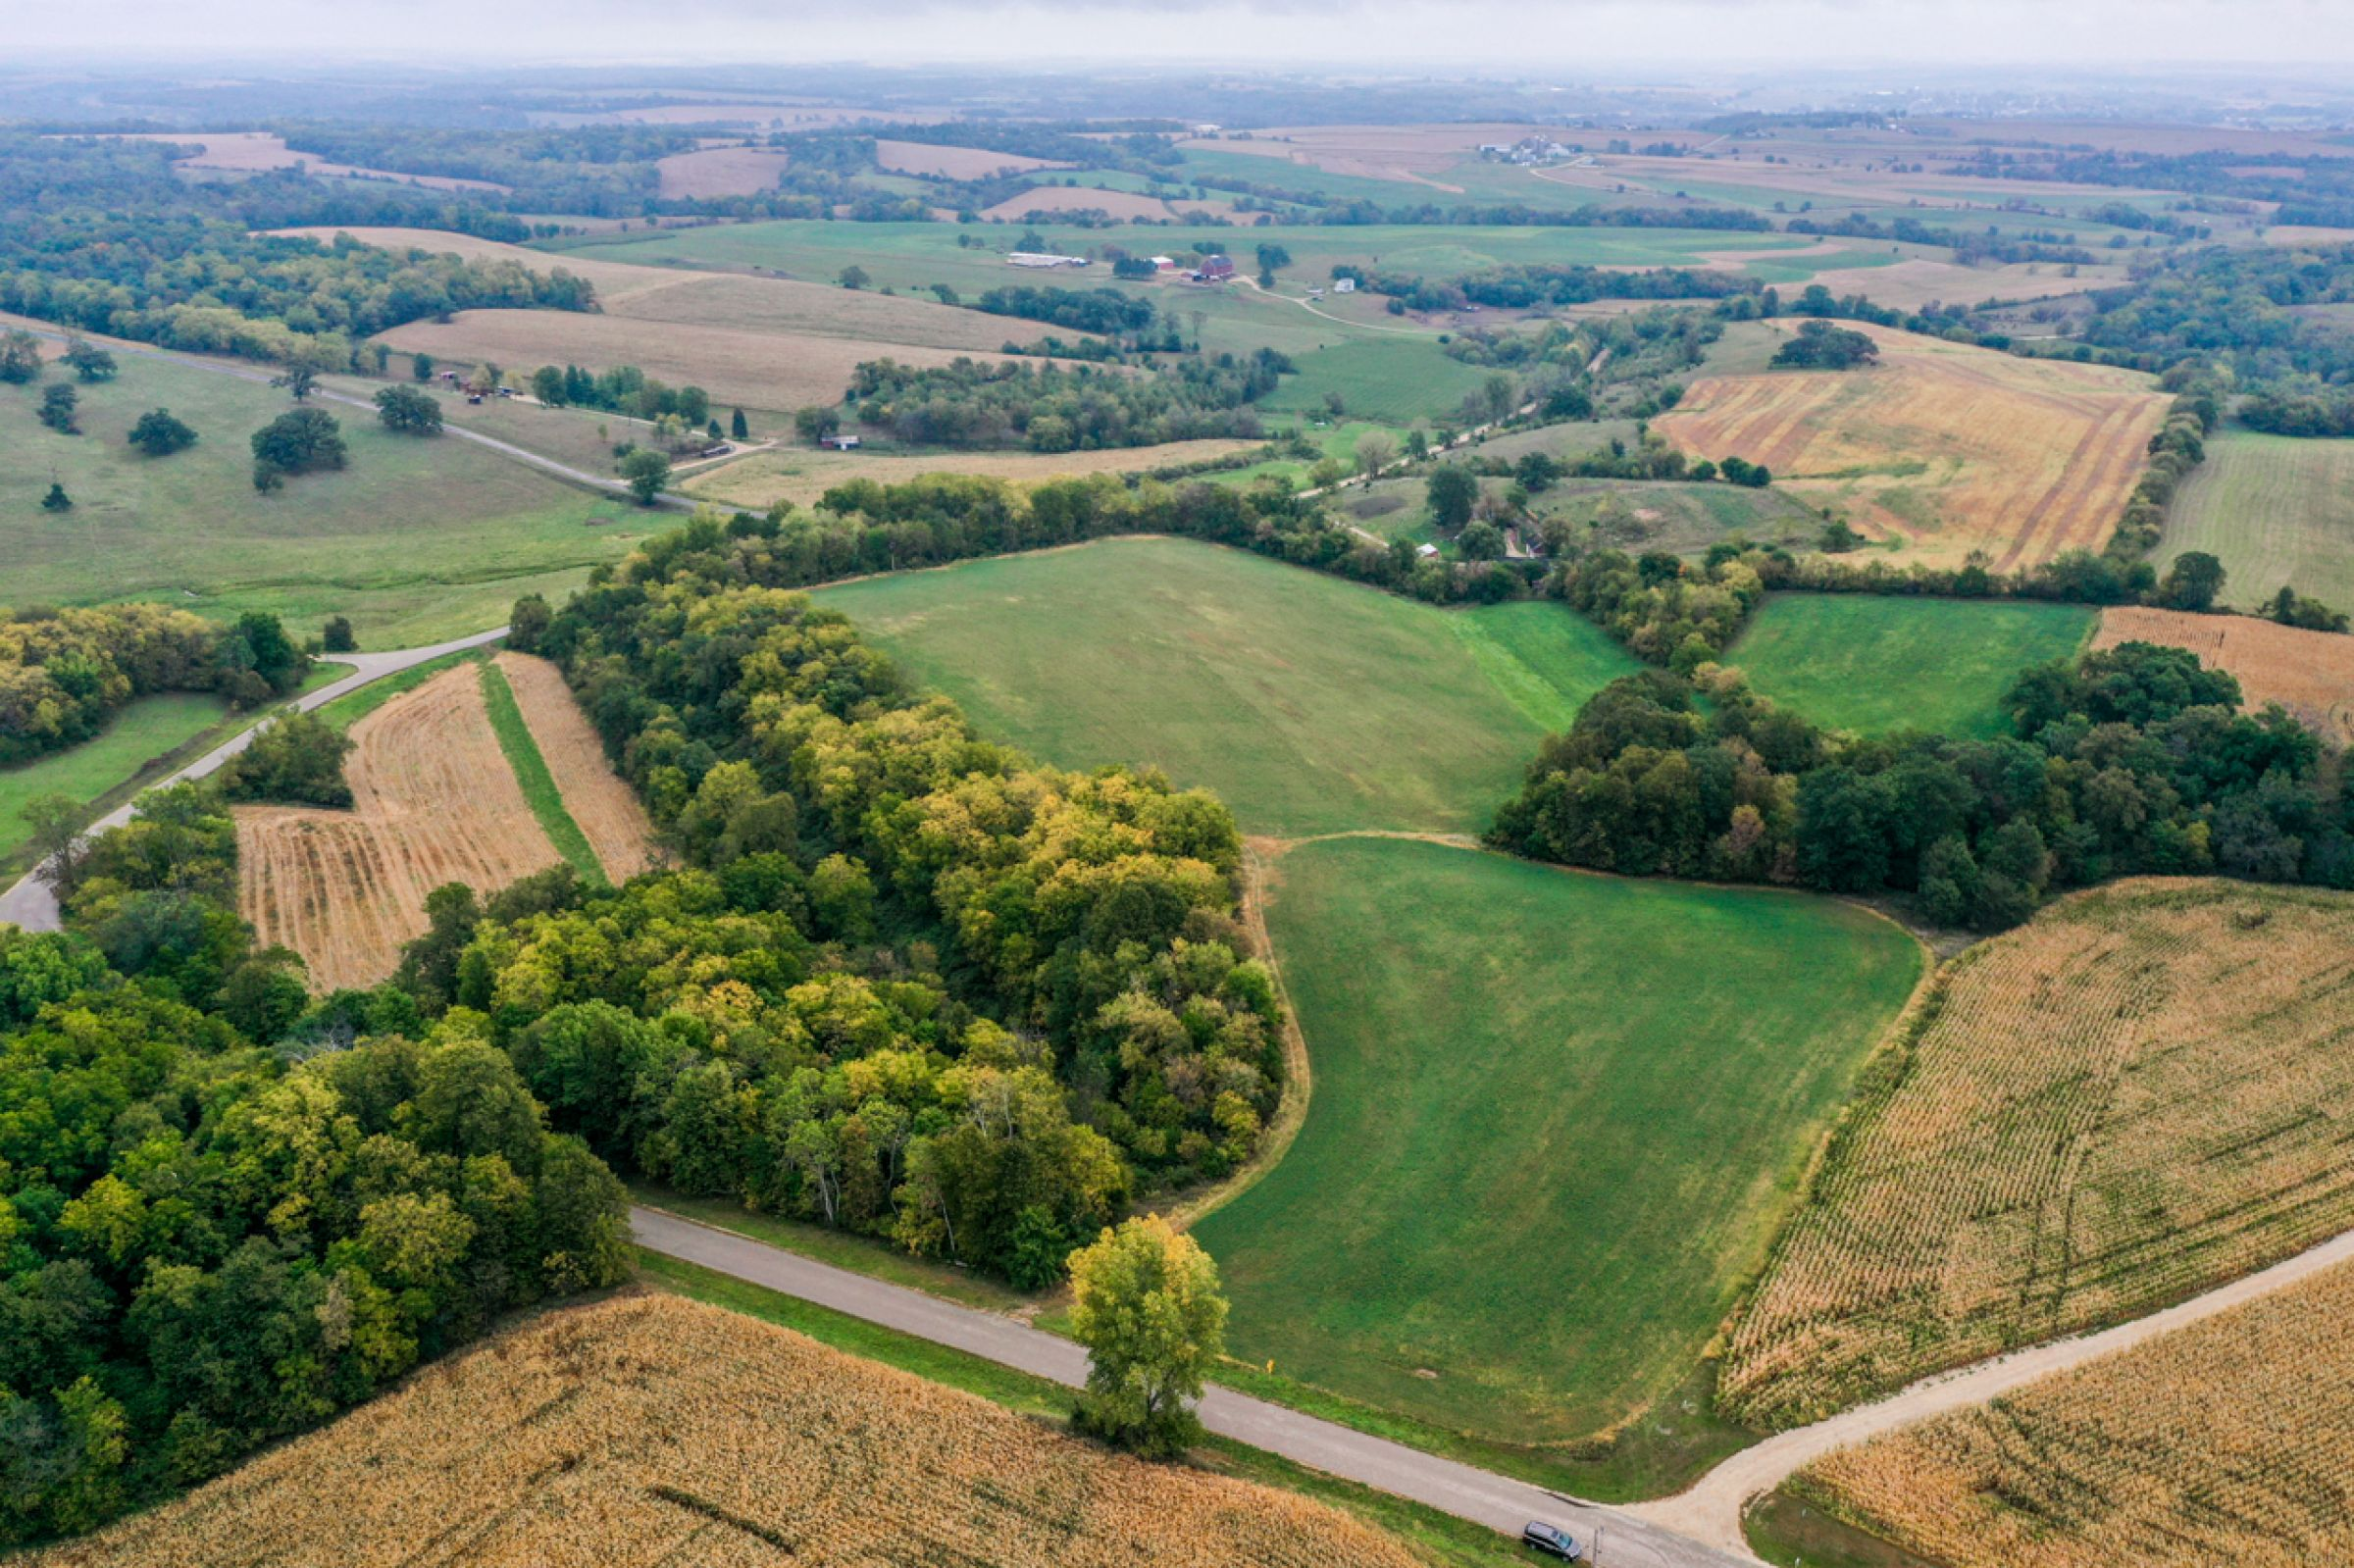 auctions-land-lafayette-county-wisconsin-138-acres-listing-number-15758-4-2021-09-21-155932.jpg